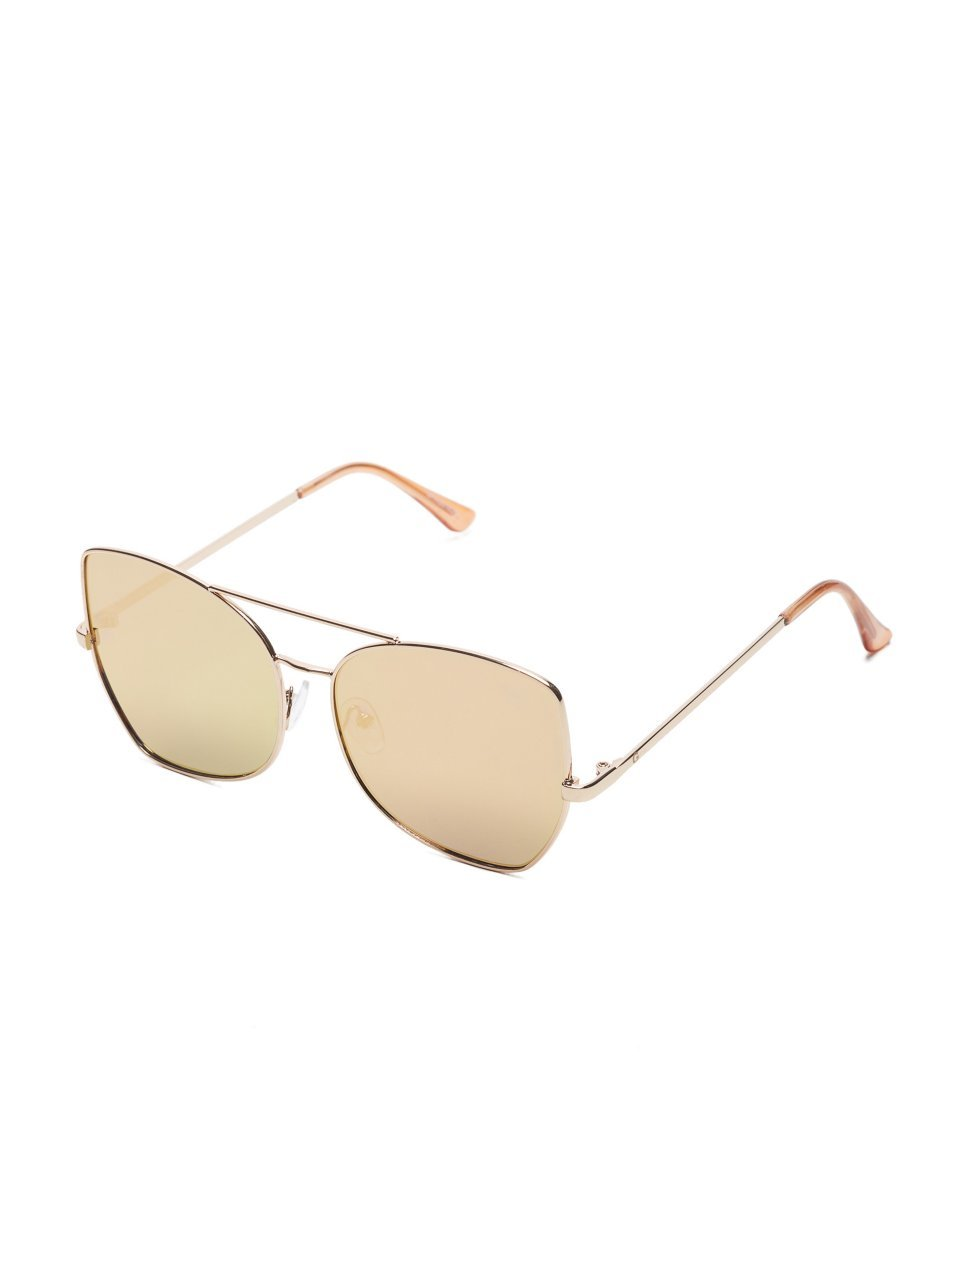 G by GUESS Women's Mirrored Top Bar Sunglasses by G by GUESS (Image #1)